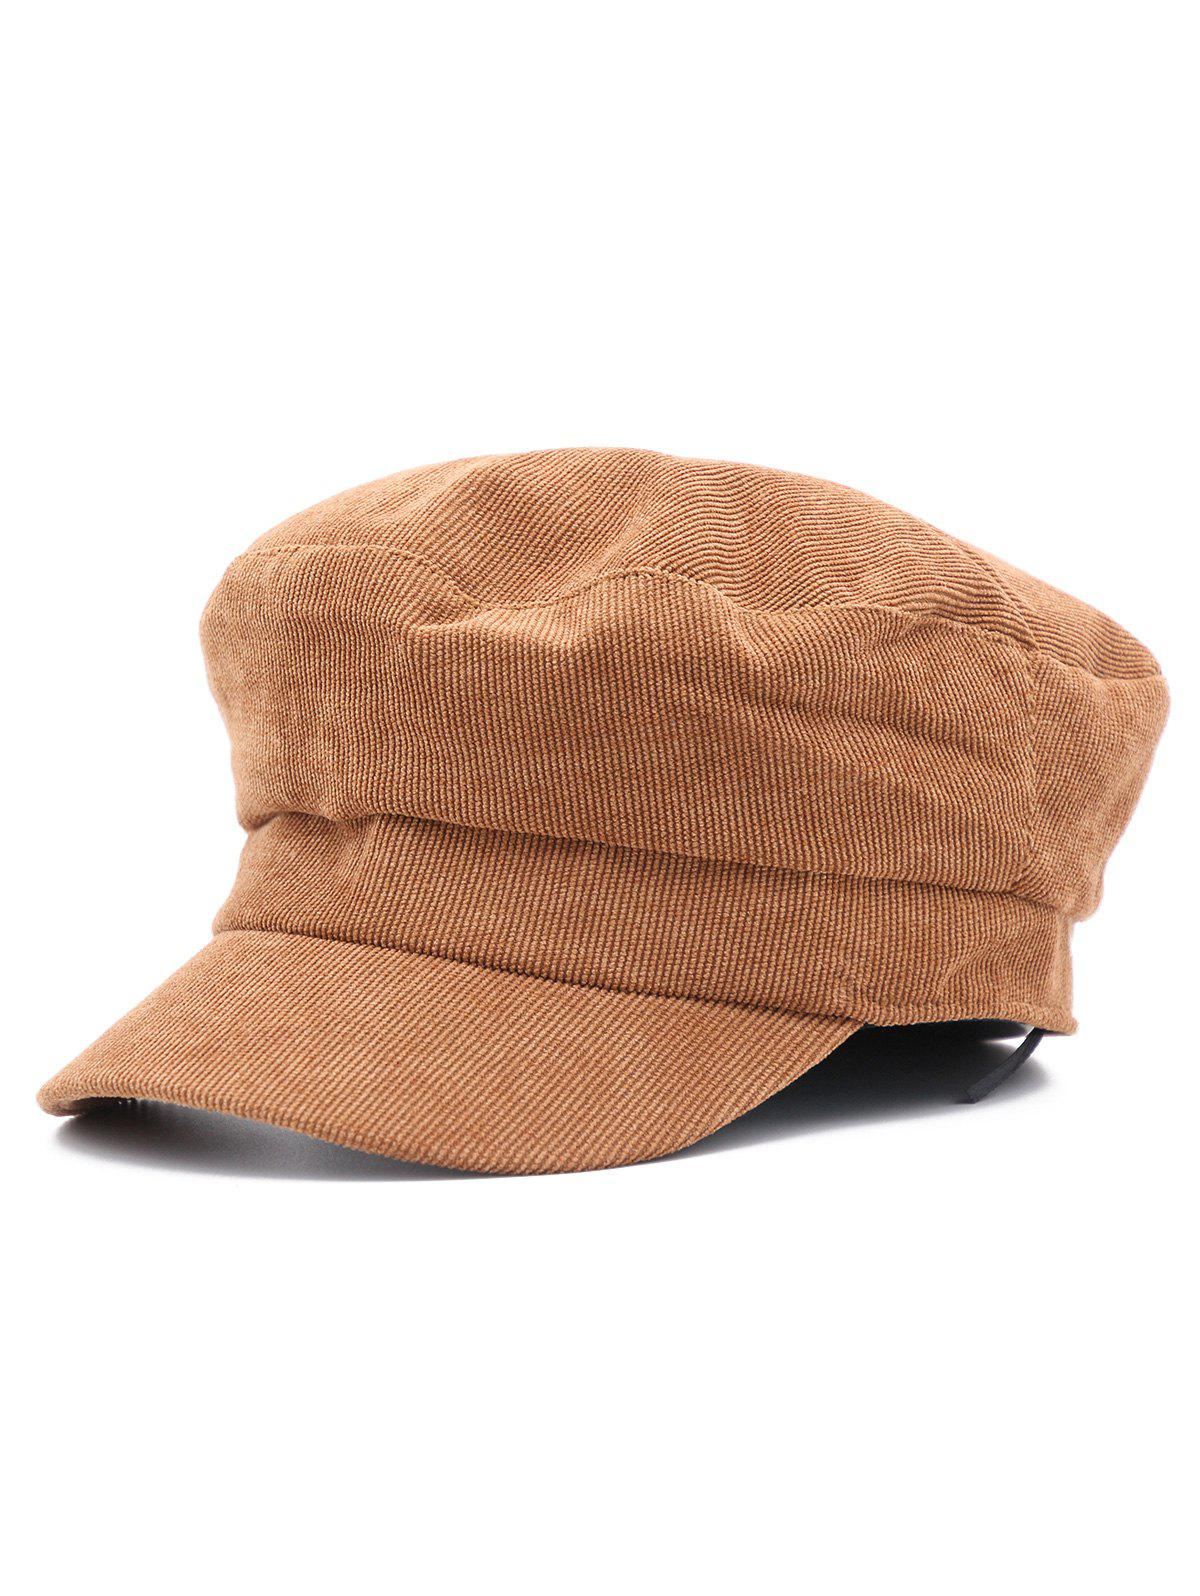 Vintage Solid Color Corduroy Newsboy Cap